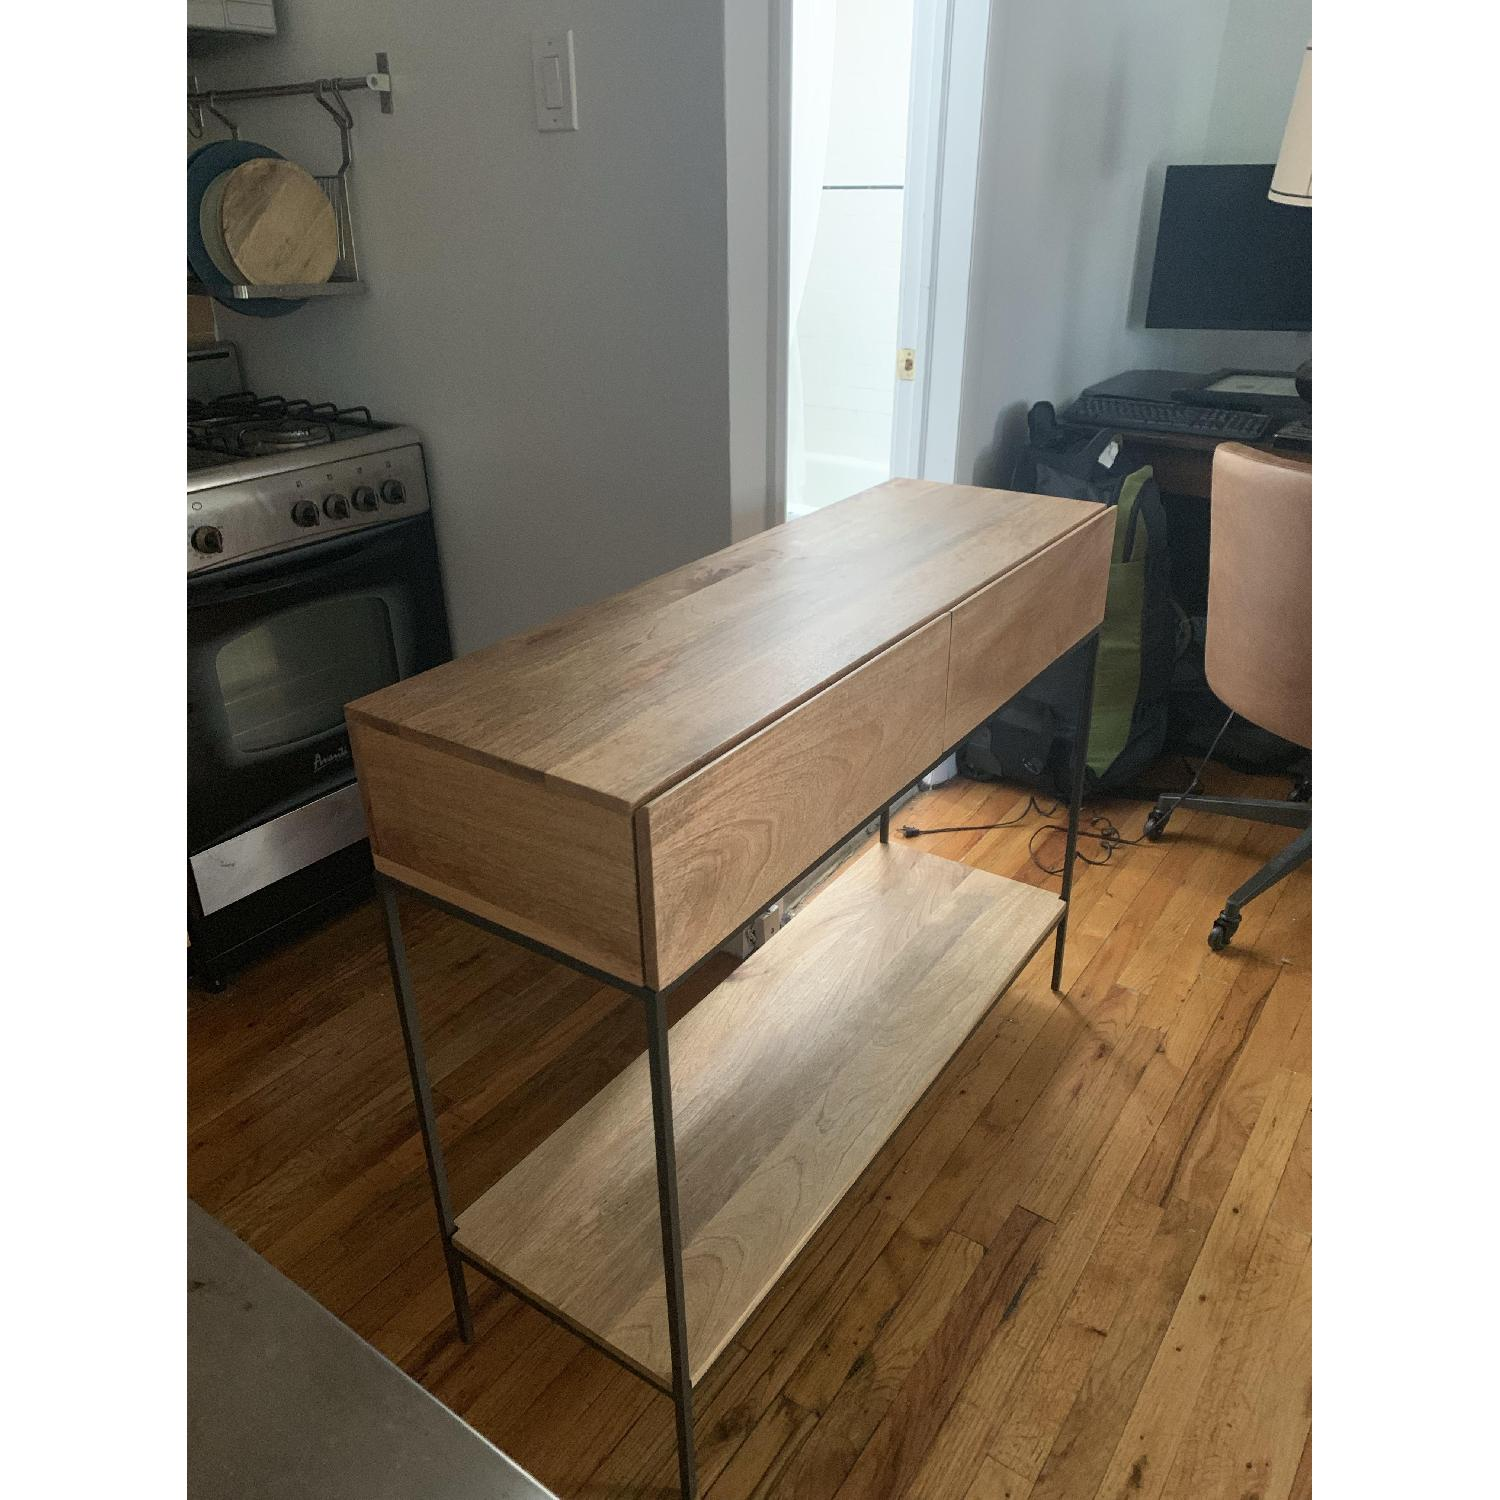 West Elm Modern Console Table in Natural Finish w/ Drawers - image-2